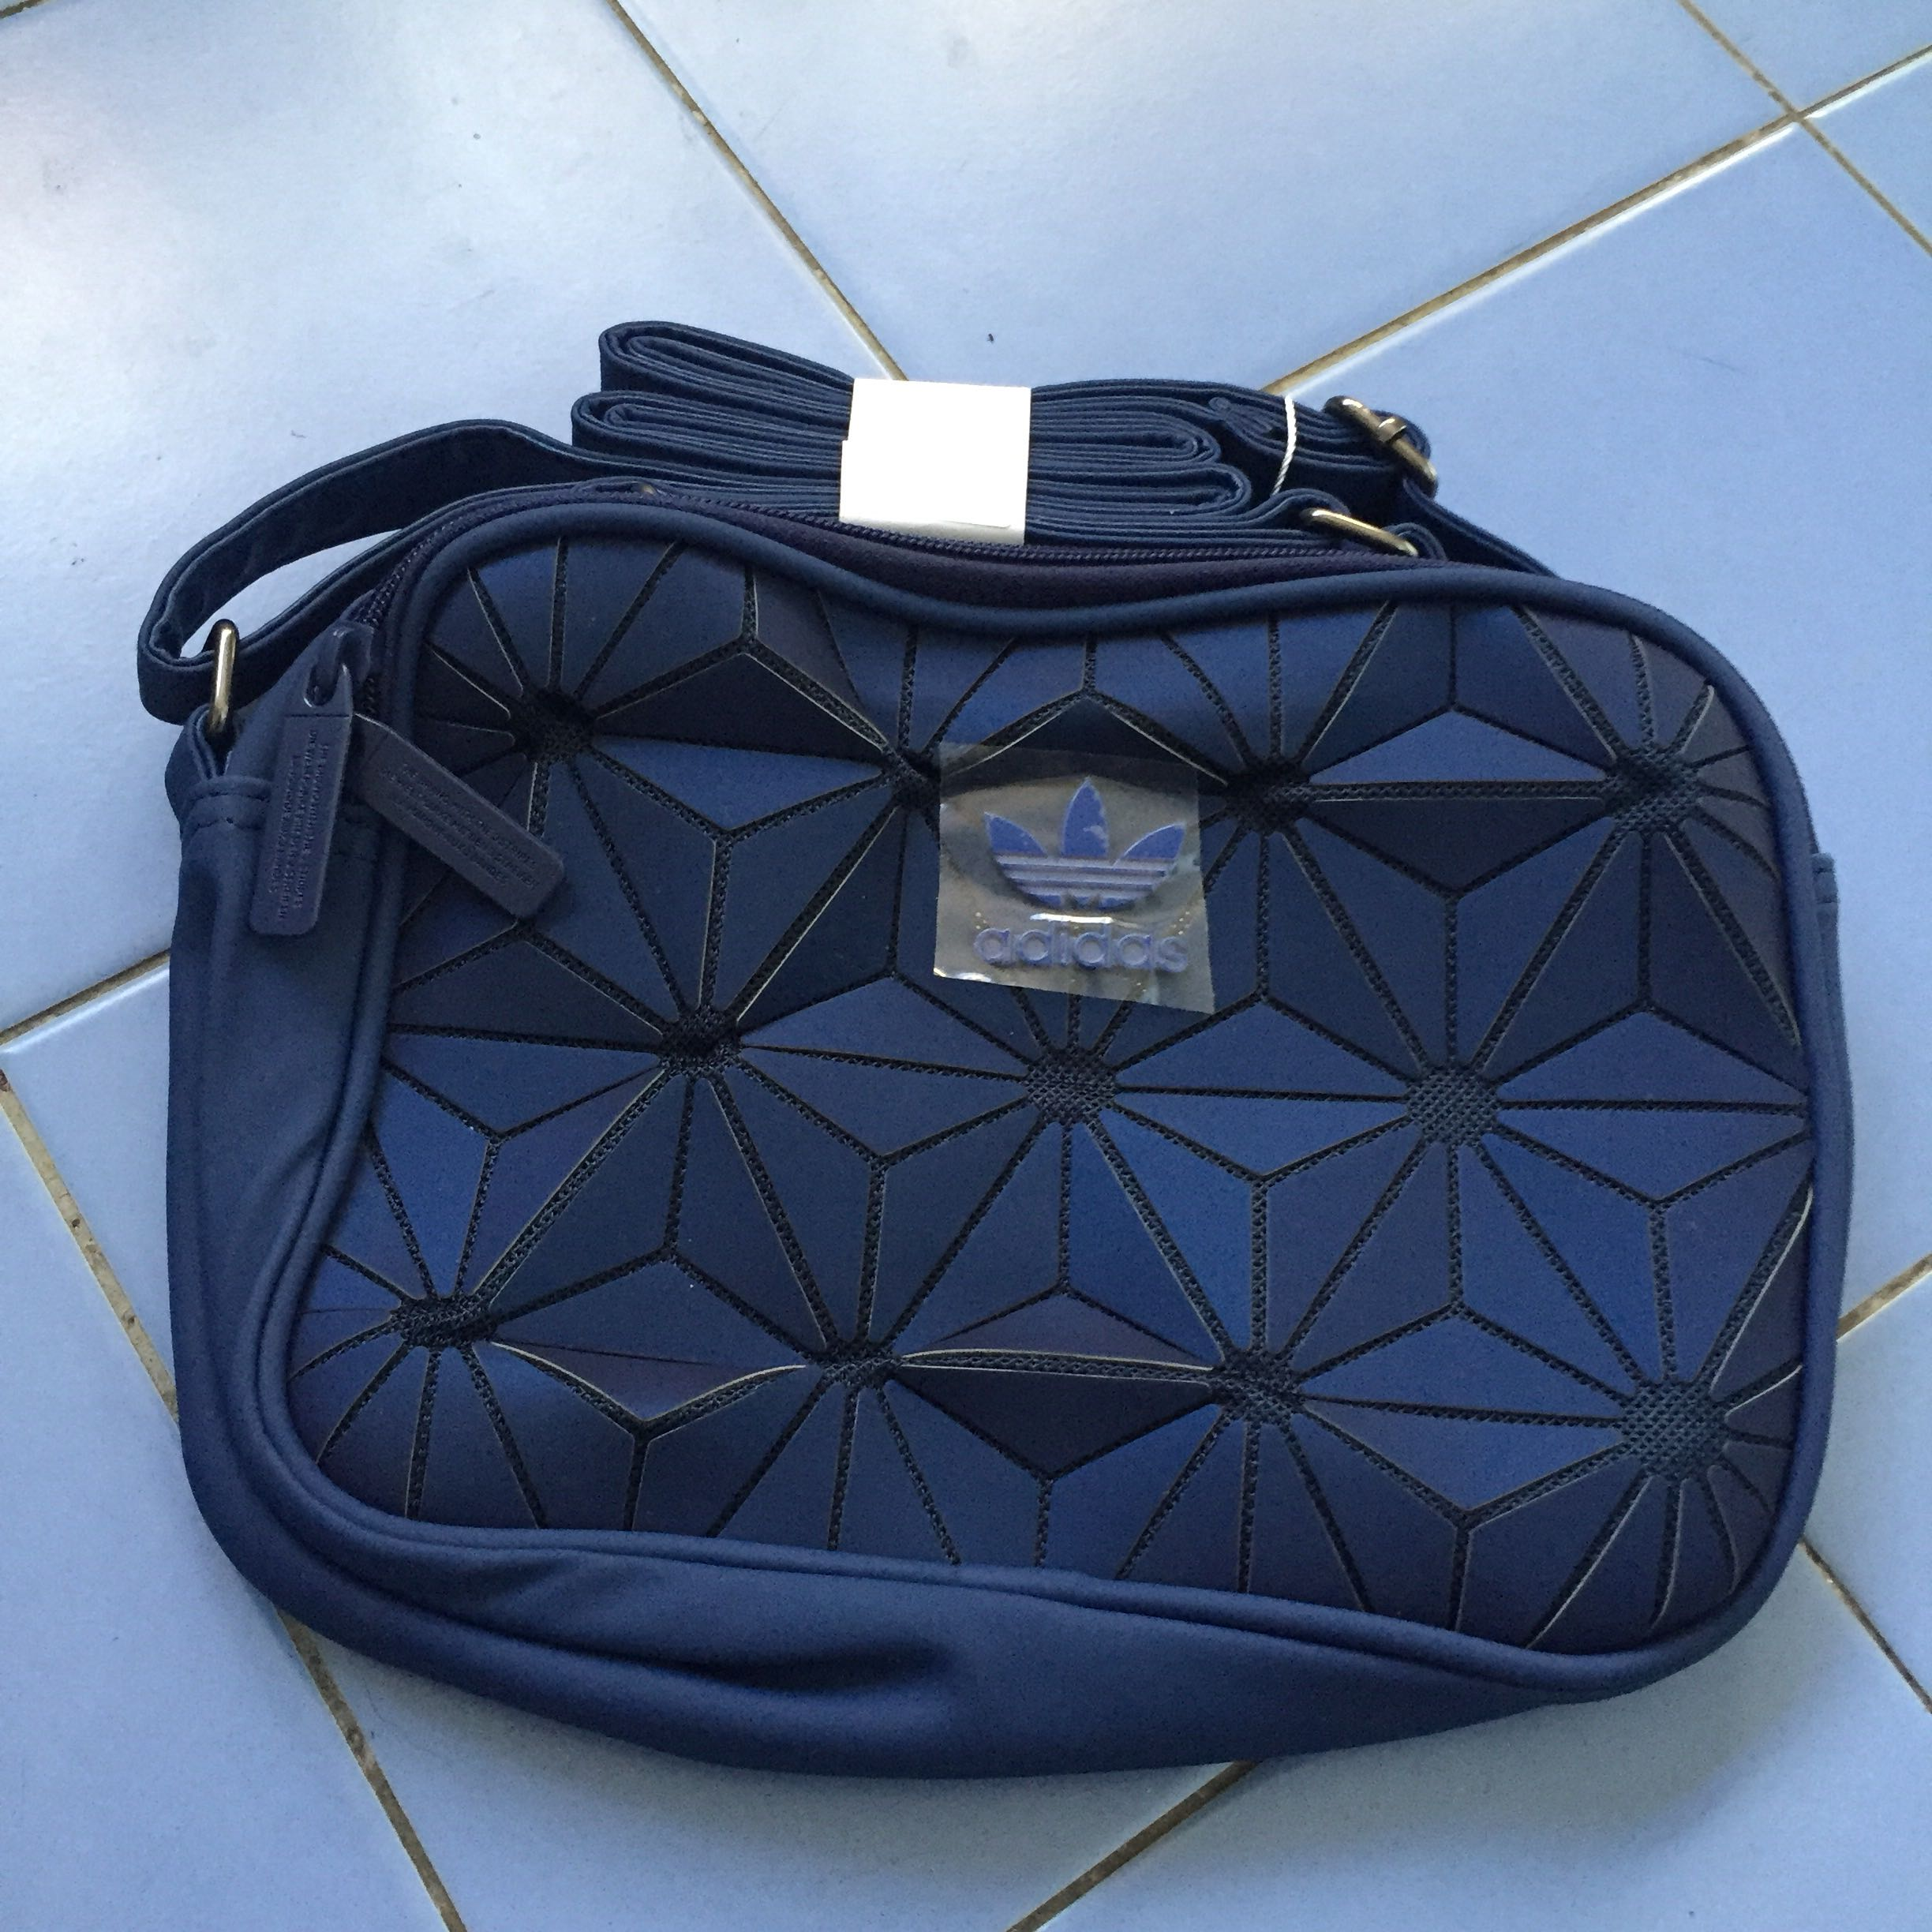 d1a38d6f15 2PCS LEFT! FREE POSTAGE! Adidas 3D Sling Bag x Issey Miyake